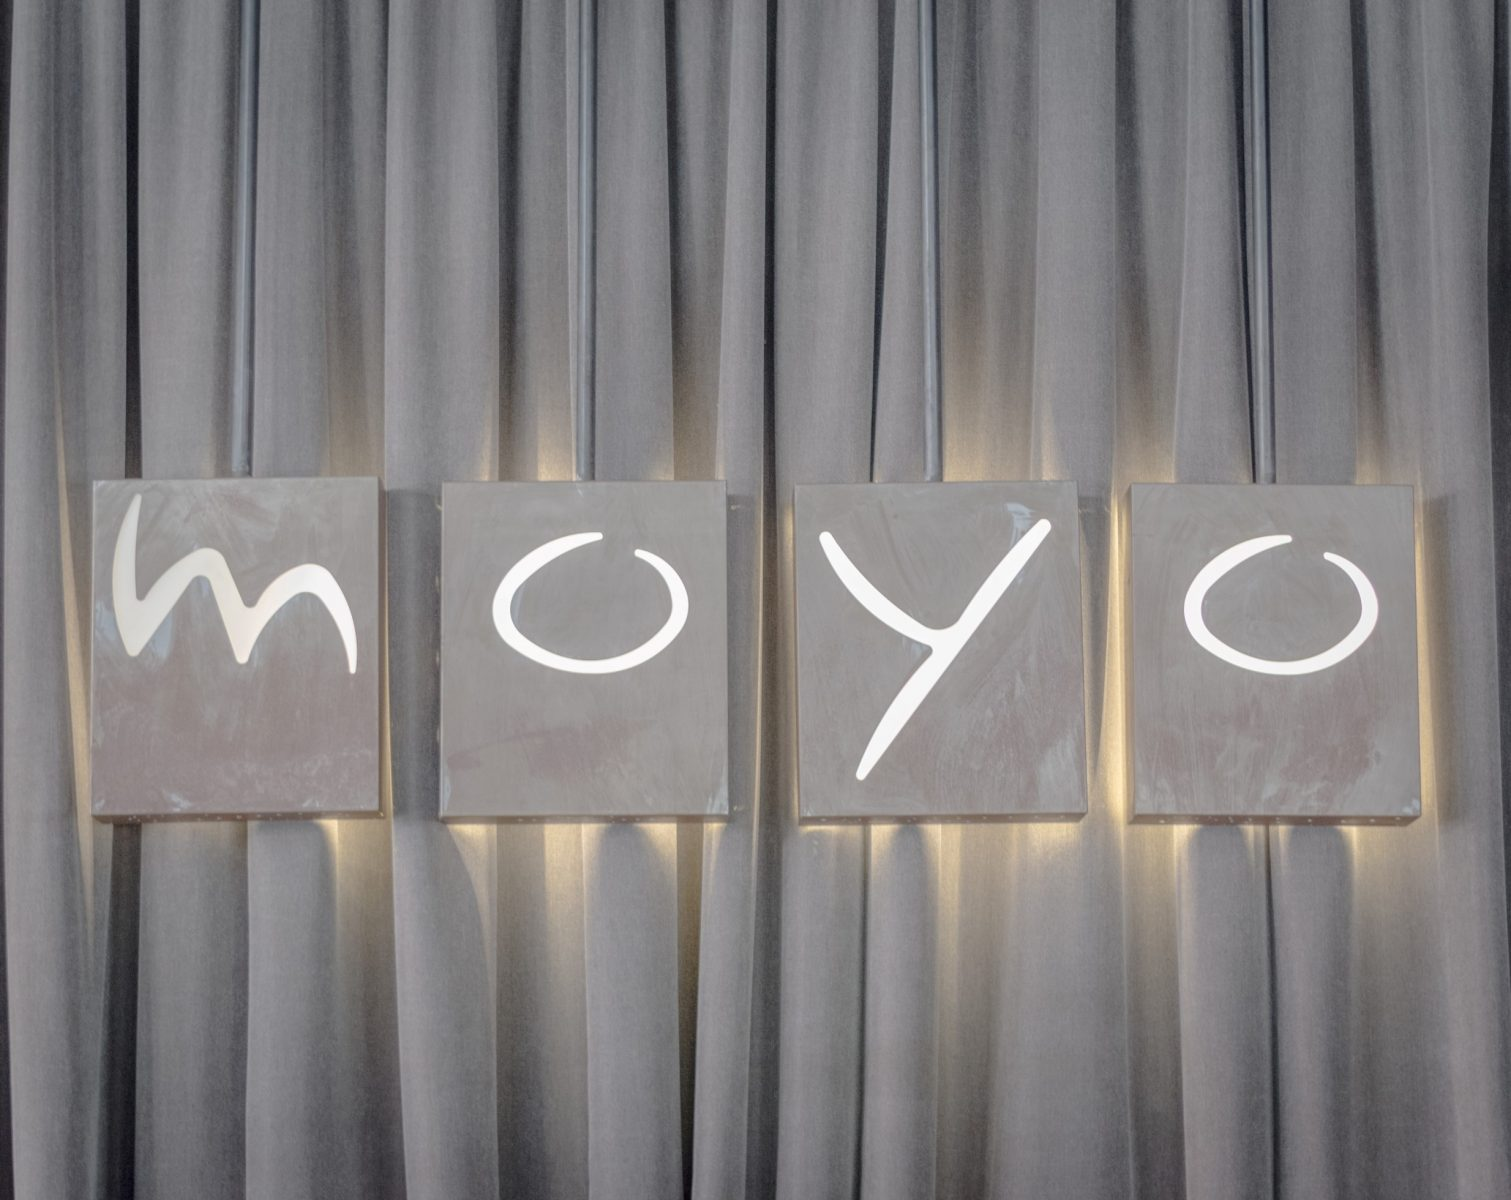 Moyo Melrose Arch | Get in my Belly 7